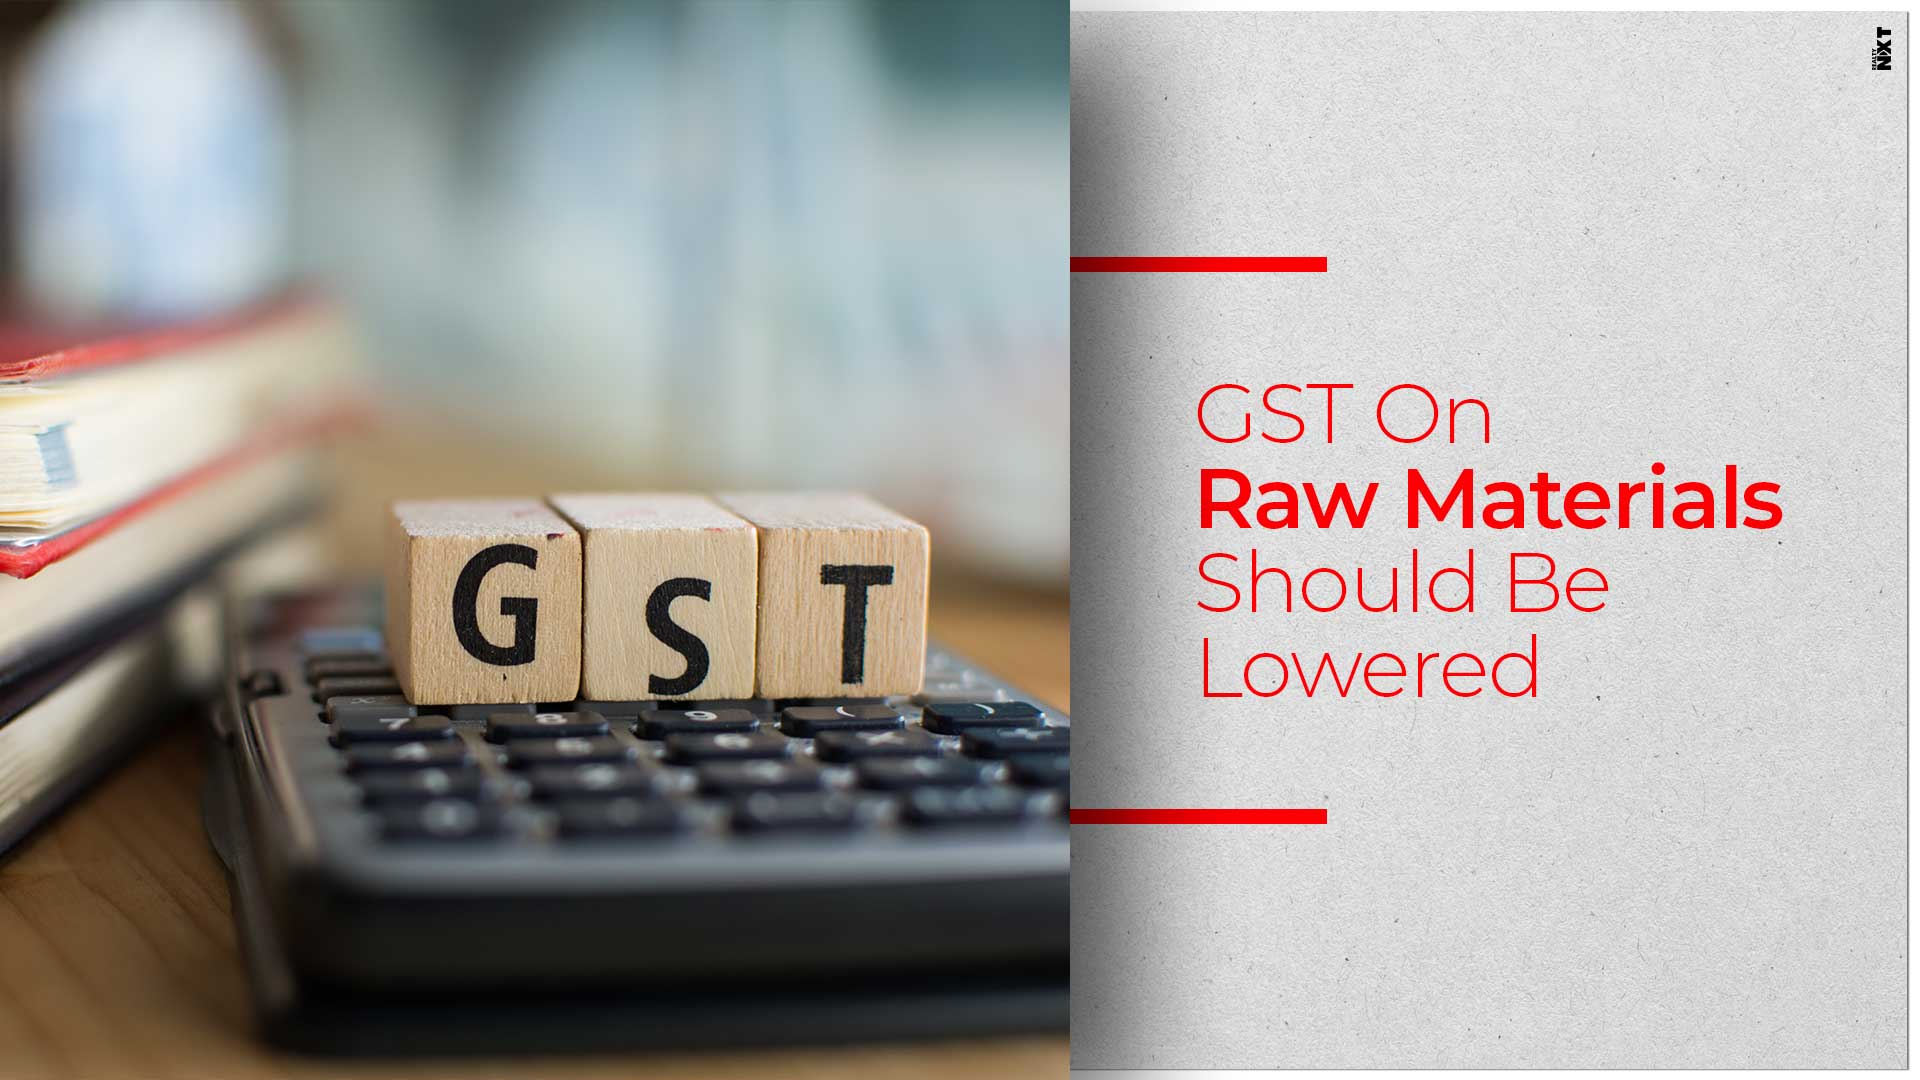 Real Estate Developers Want Lower GST On Raw Materials